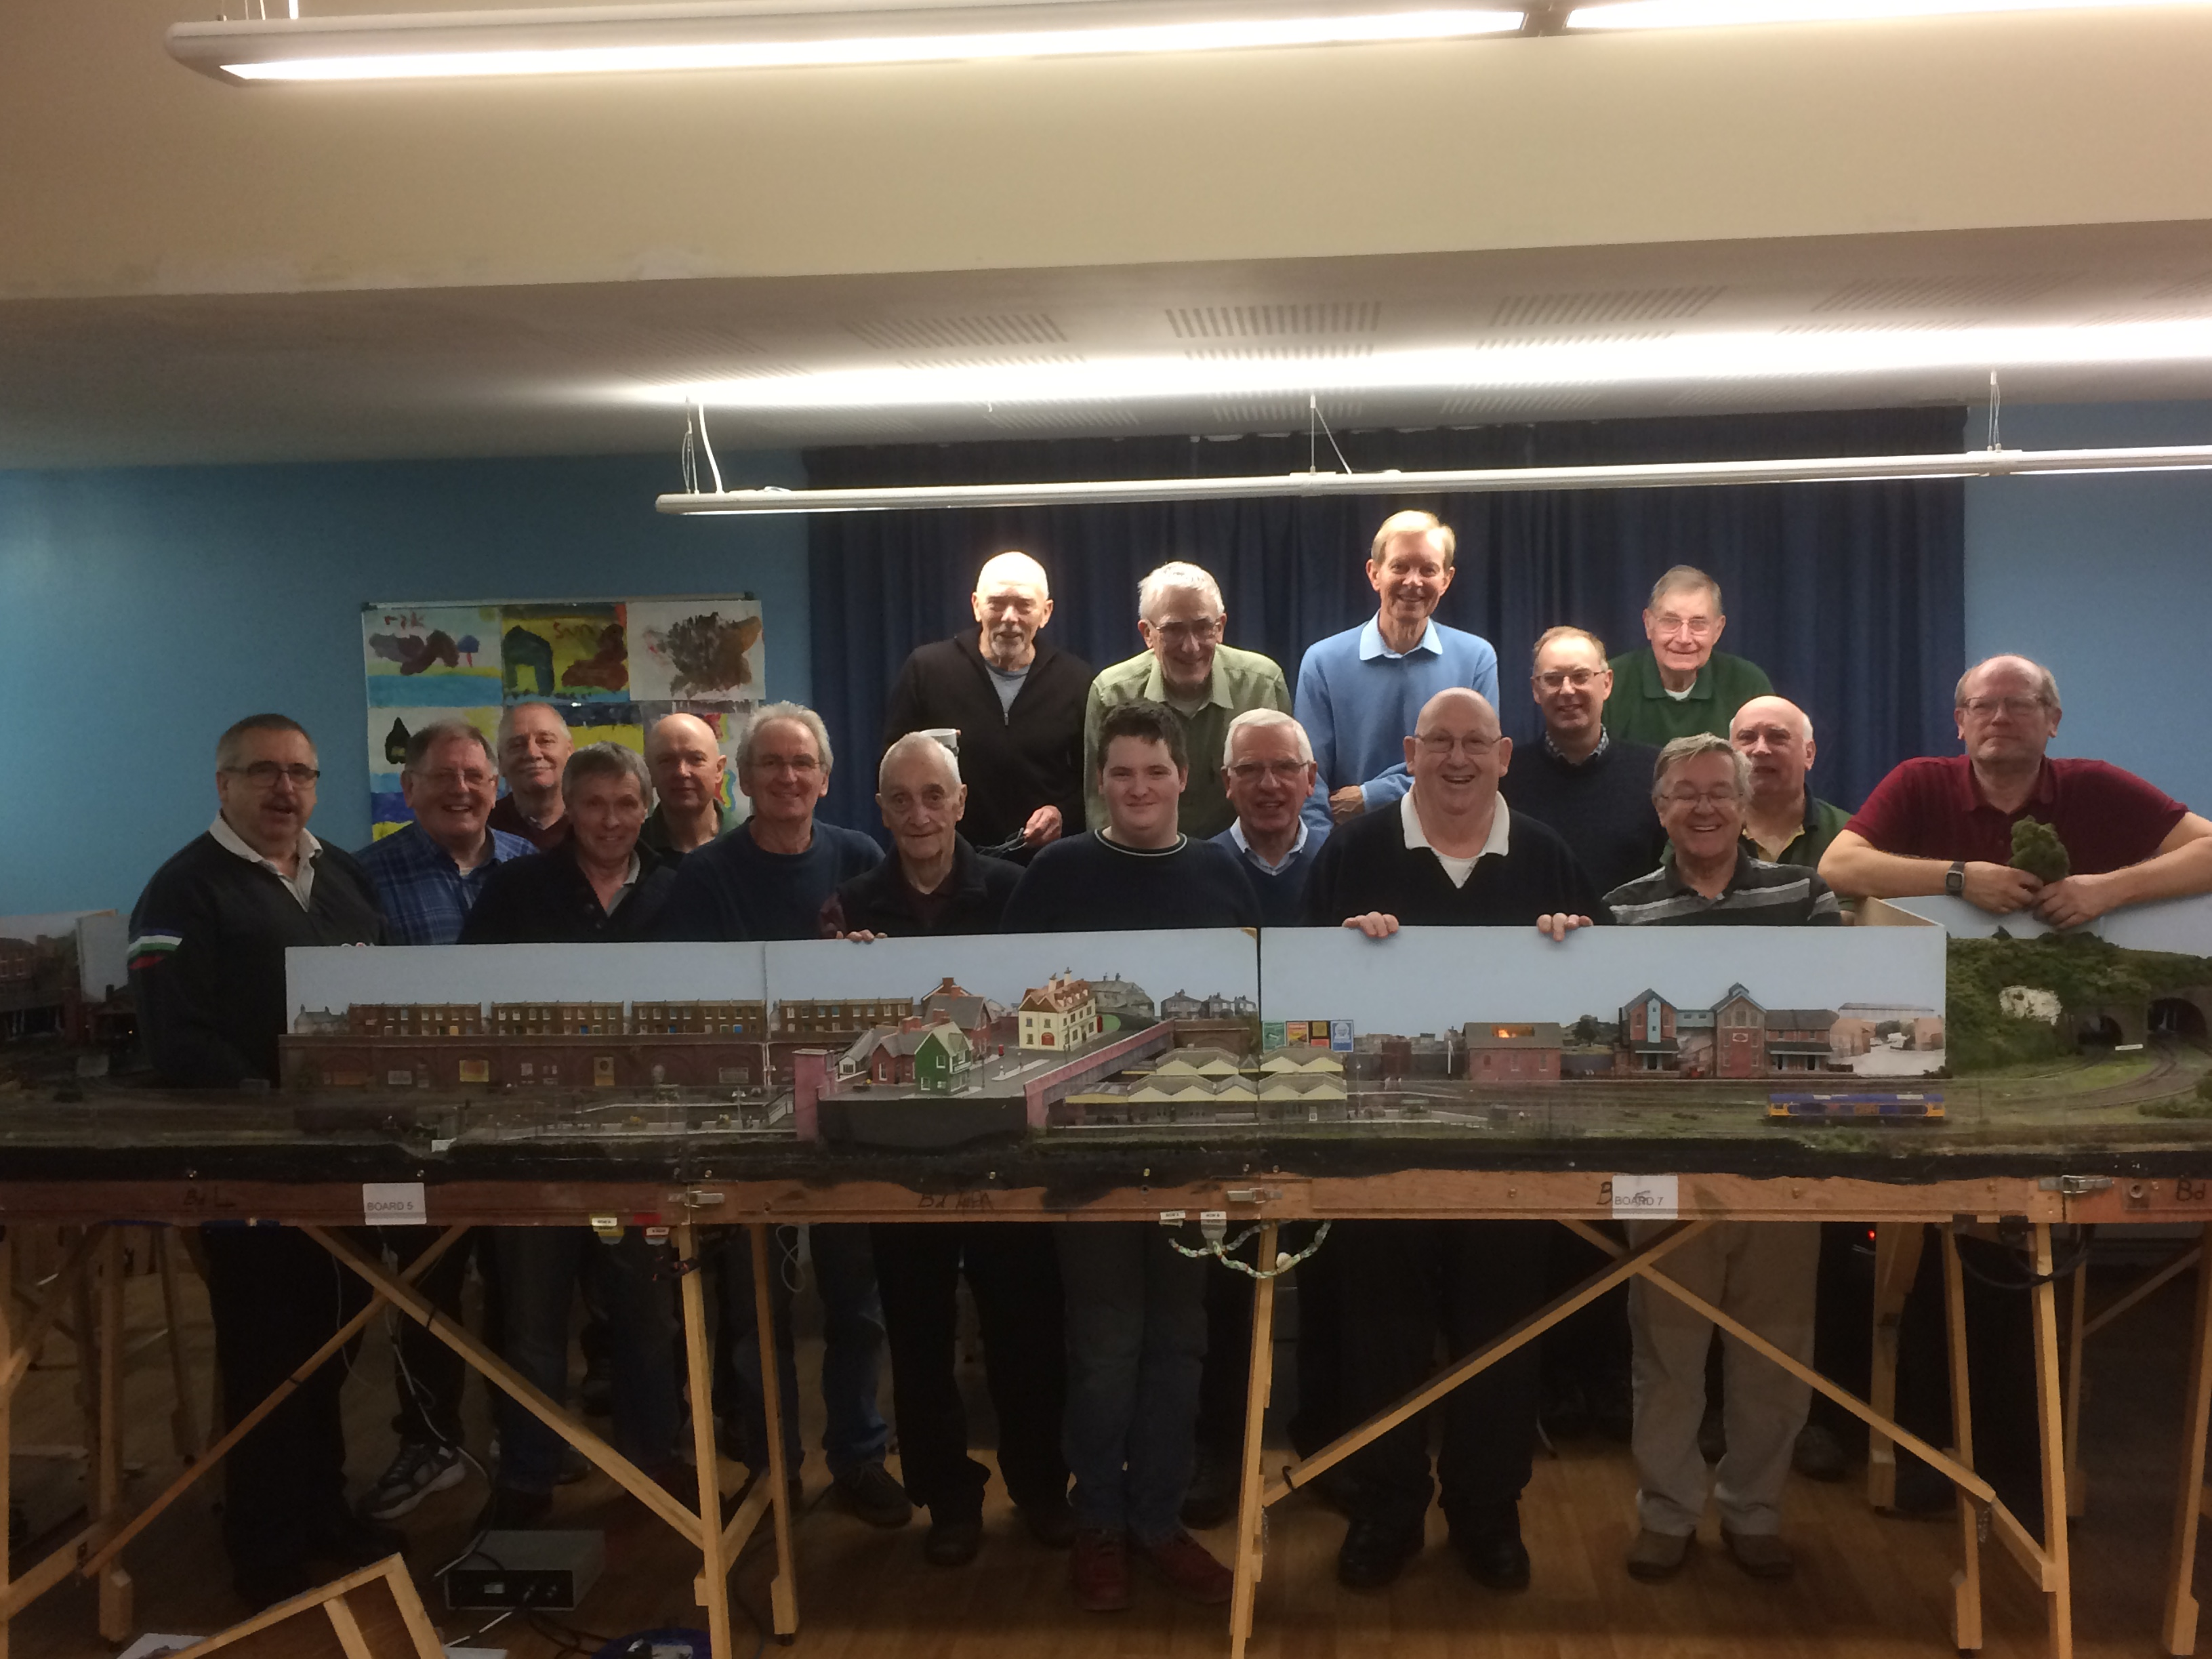 Farewell to BWJ layout as club members gather around for its last ever operating session